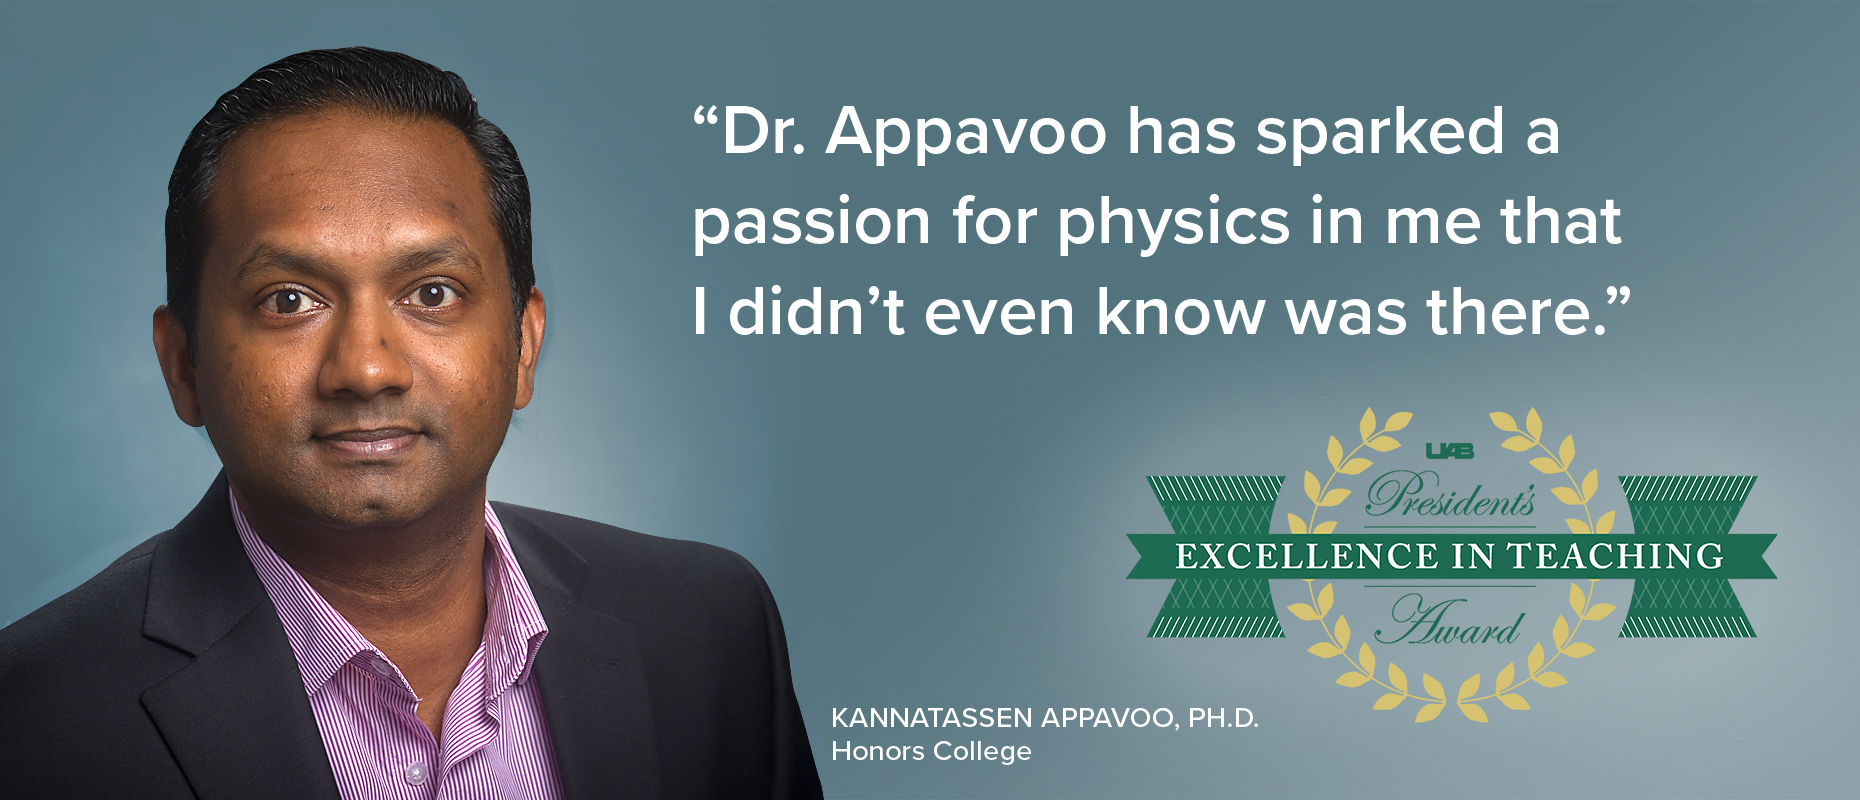 President's Award: Excellence in Teaching - Dr. Appavoo